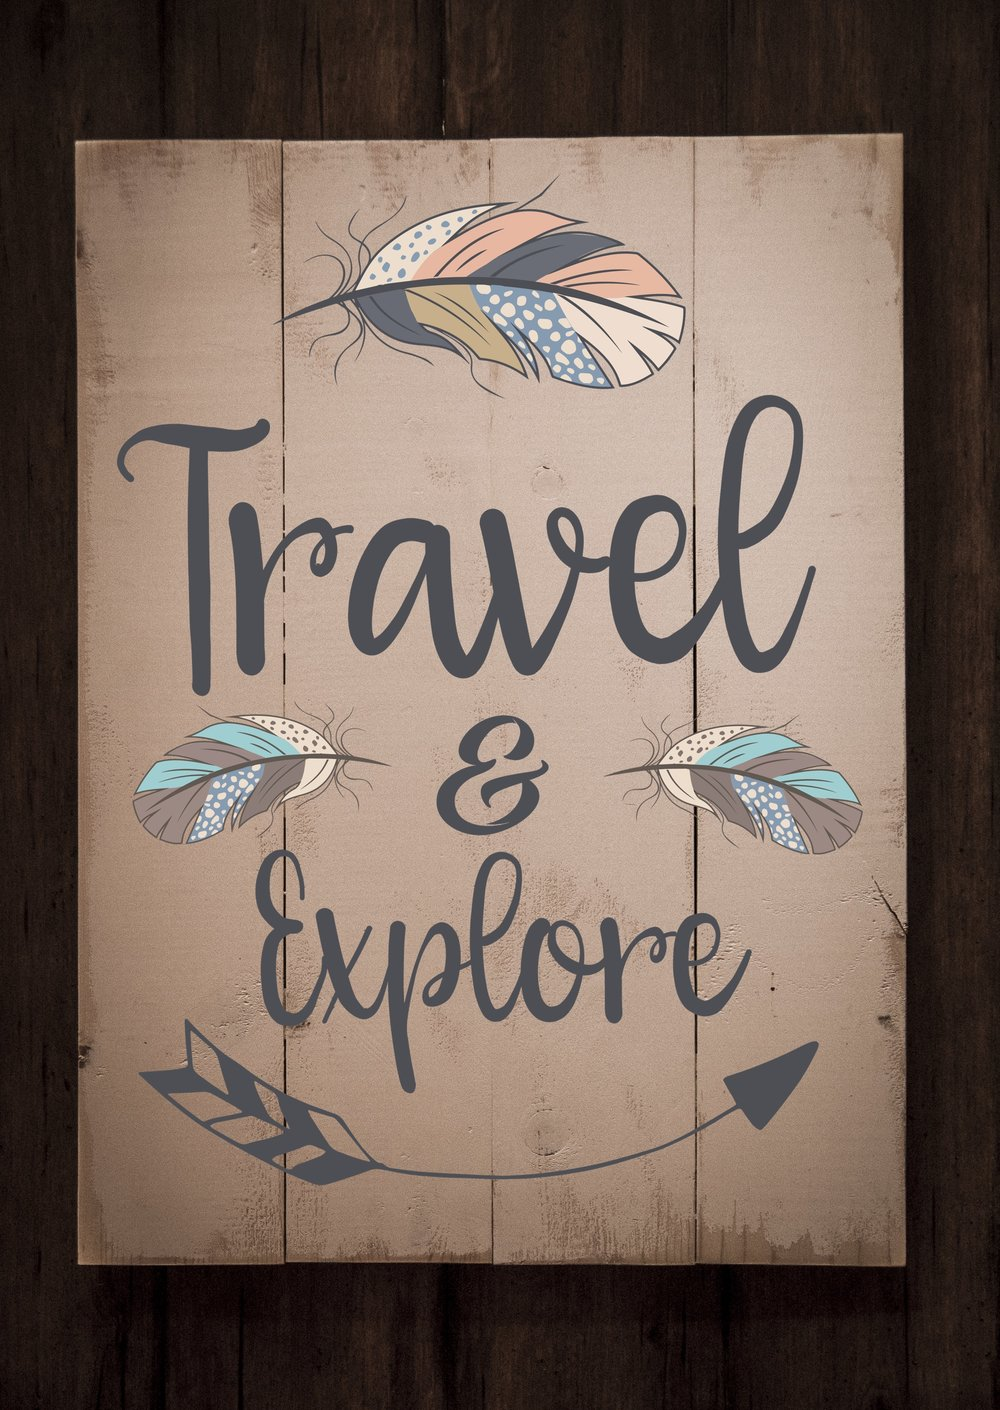 Copy of Travel and Explore